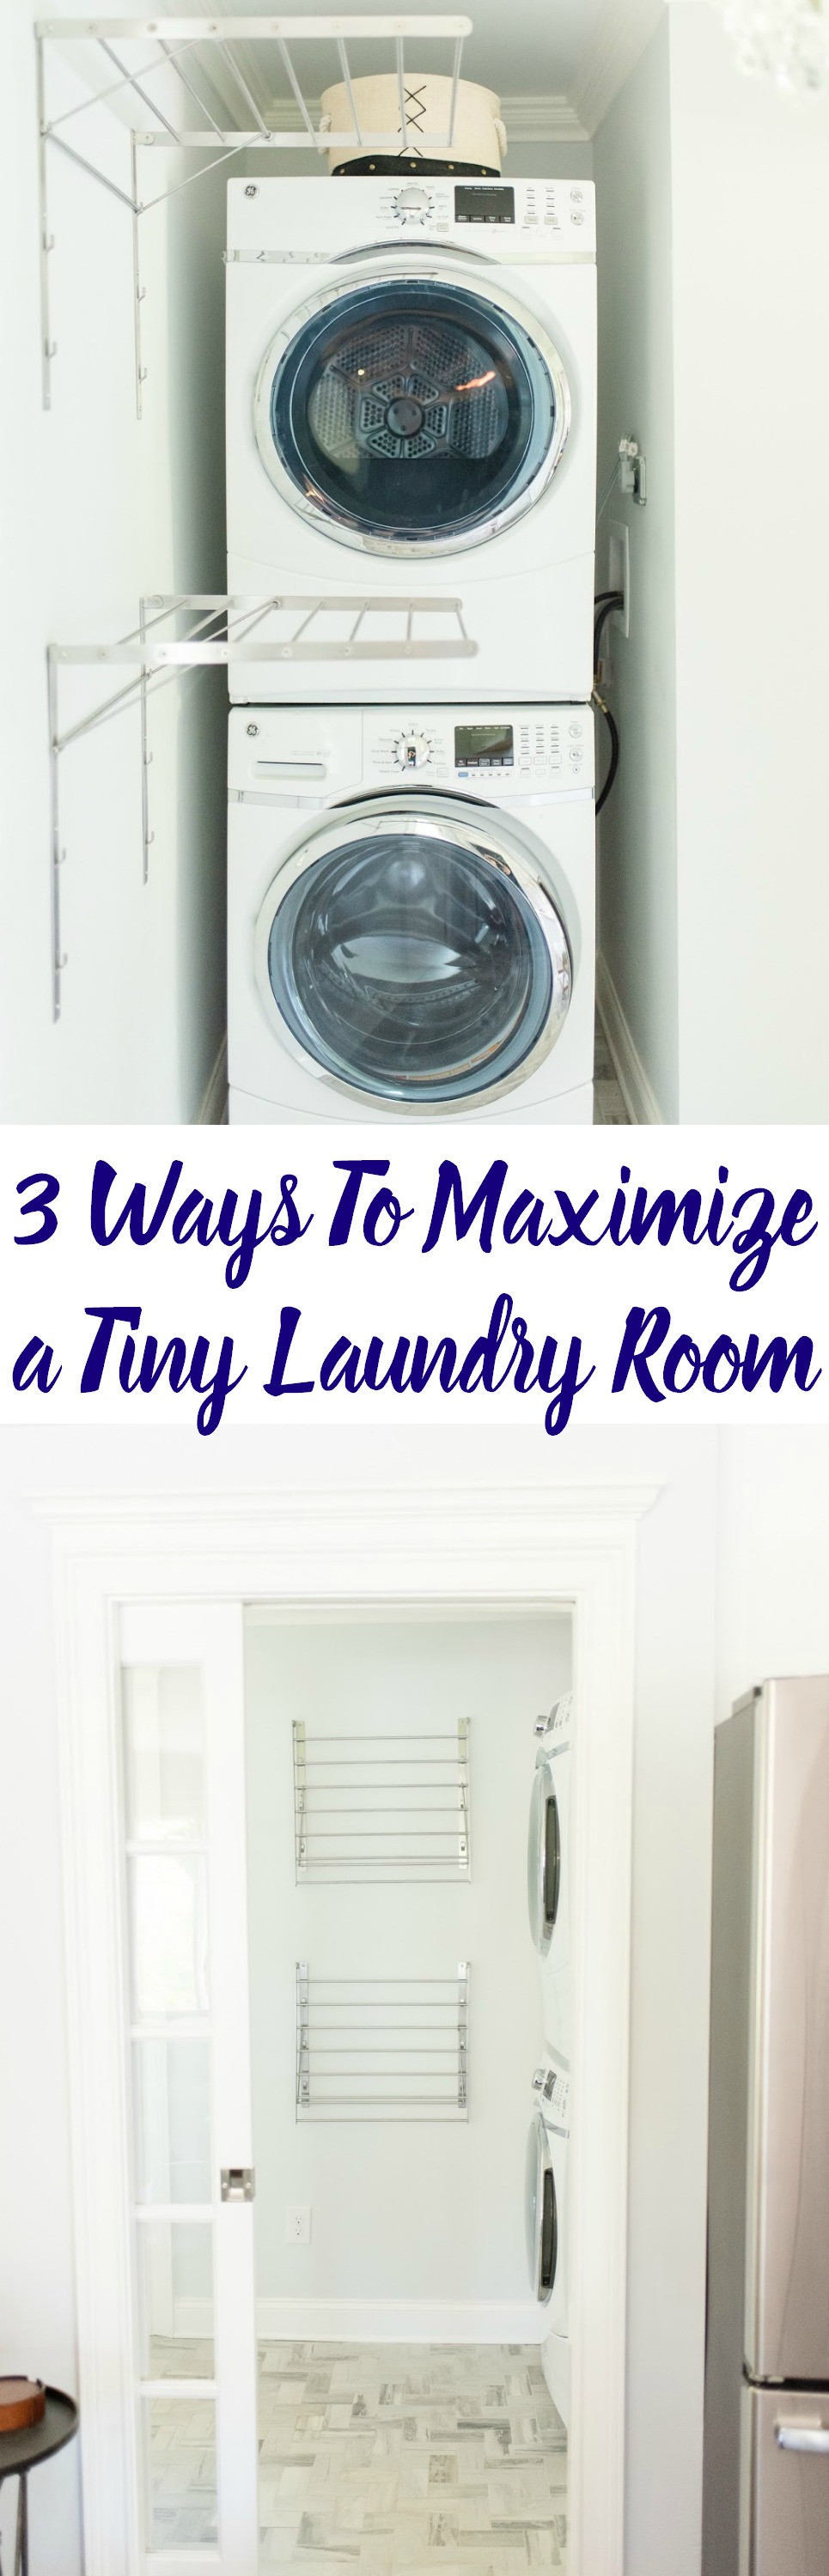 3 Ways To Maximize a Tiny Laundry Room. Great tips on maximizing the space in your home.